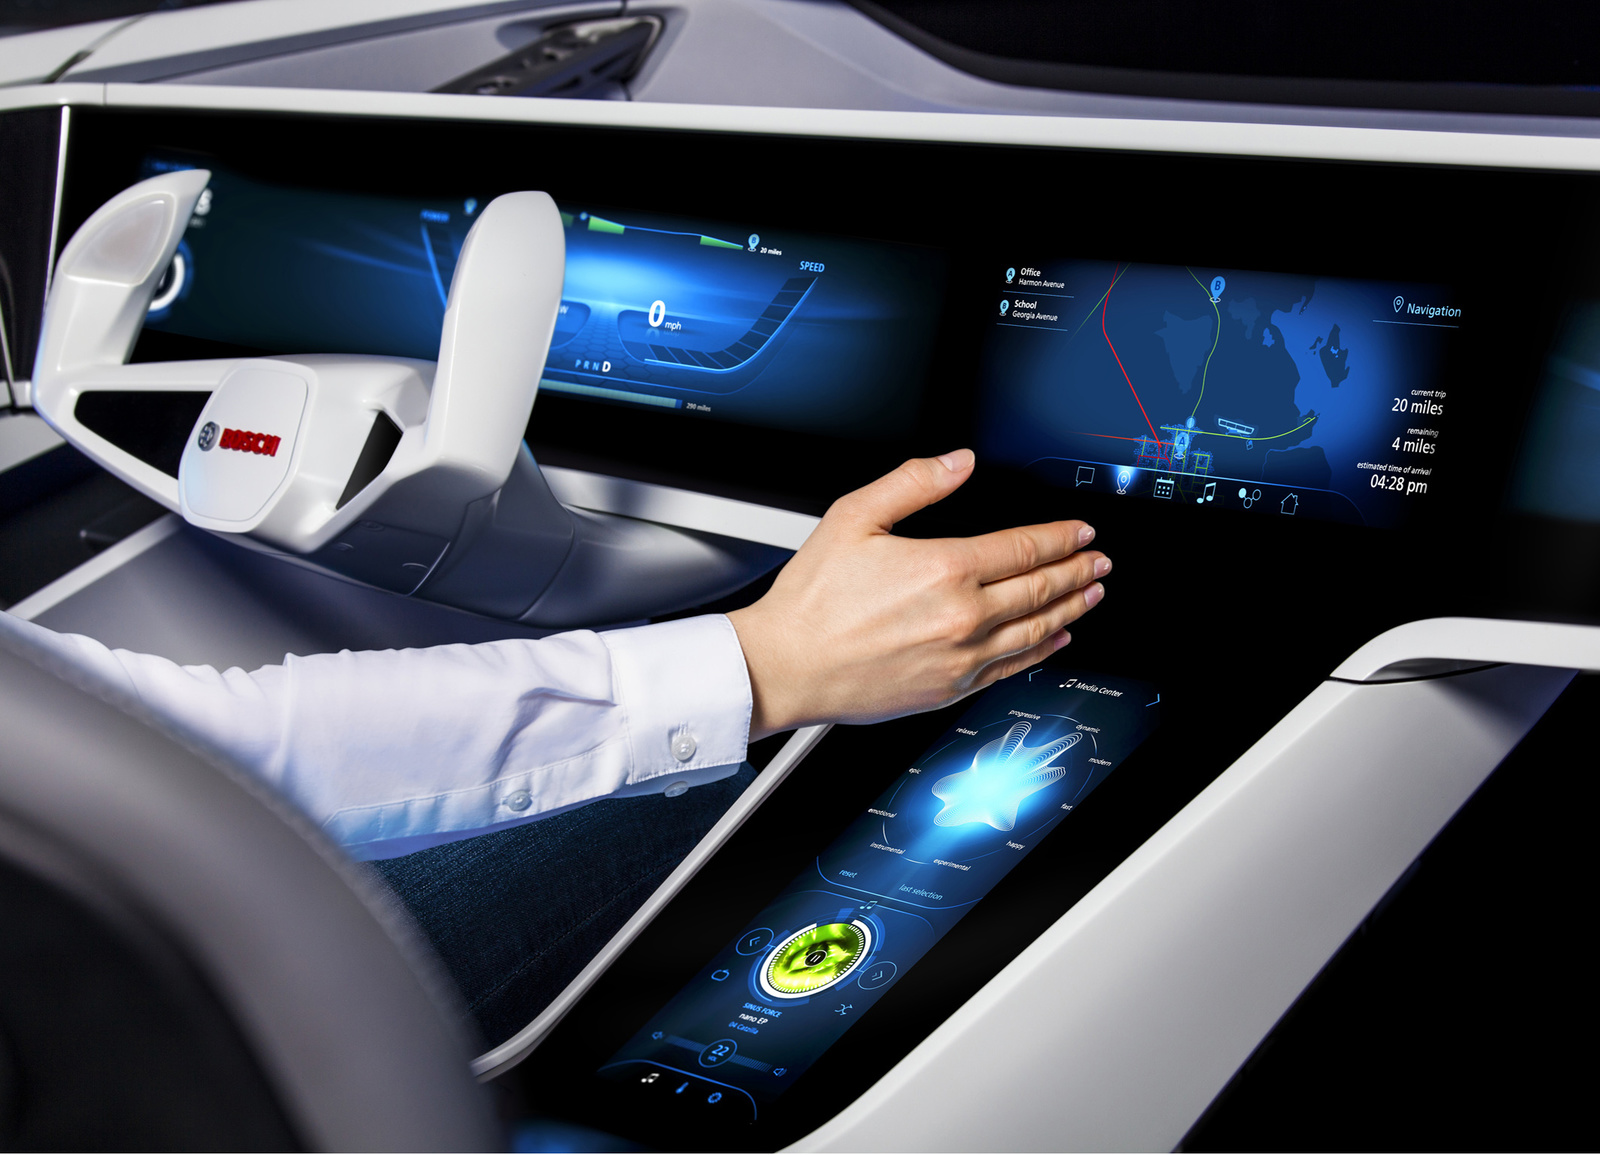 Just a few years from now, cars will be an active part of the internet of things (IoT), able to communicate with other connected modes of transportation, and even with the smart home.